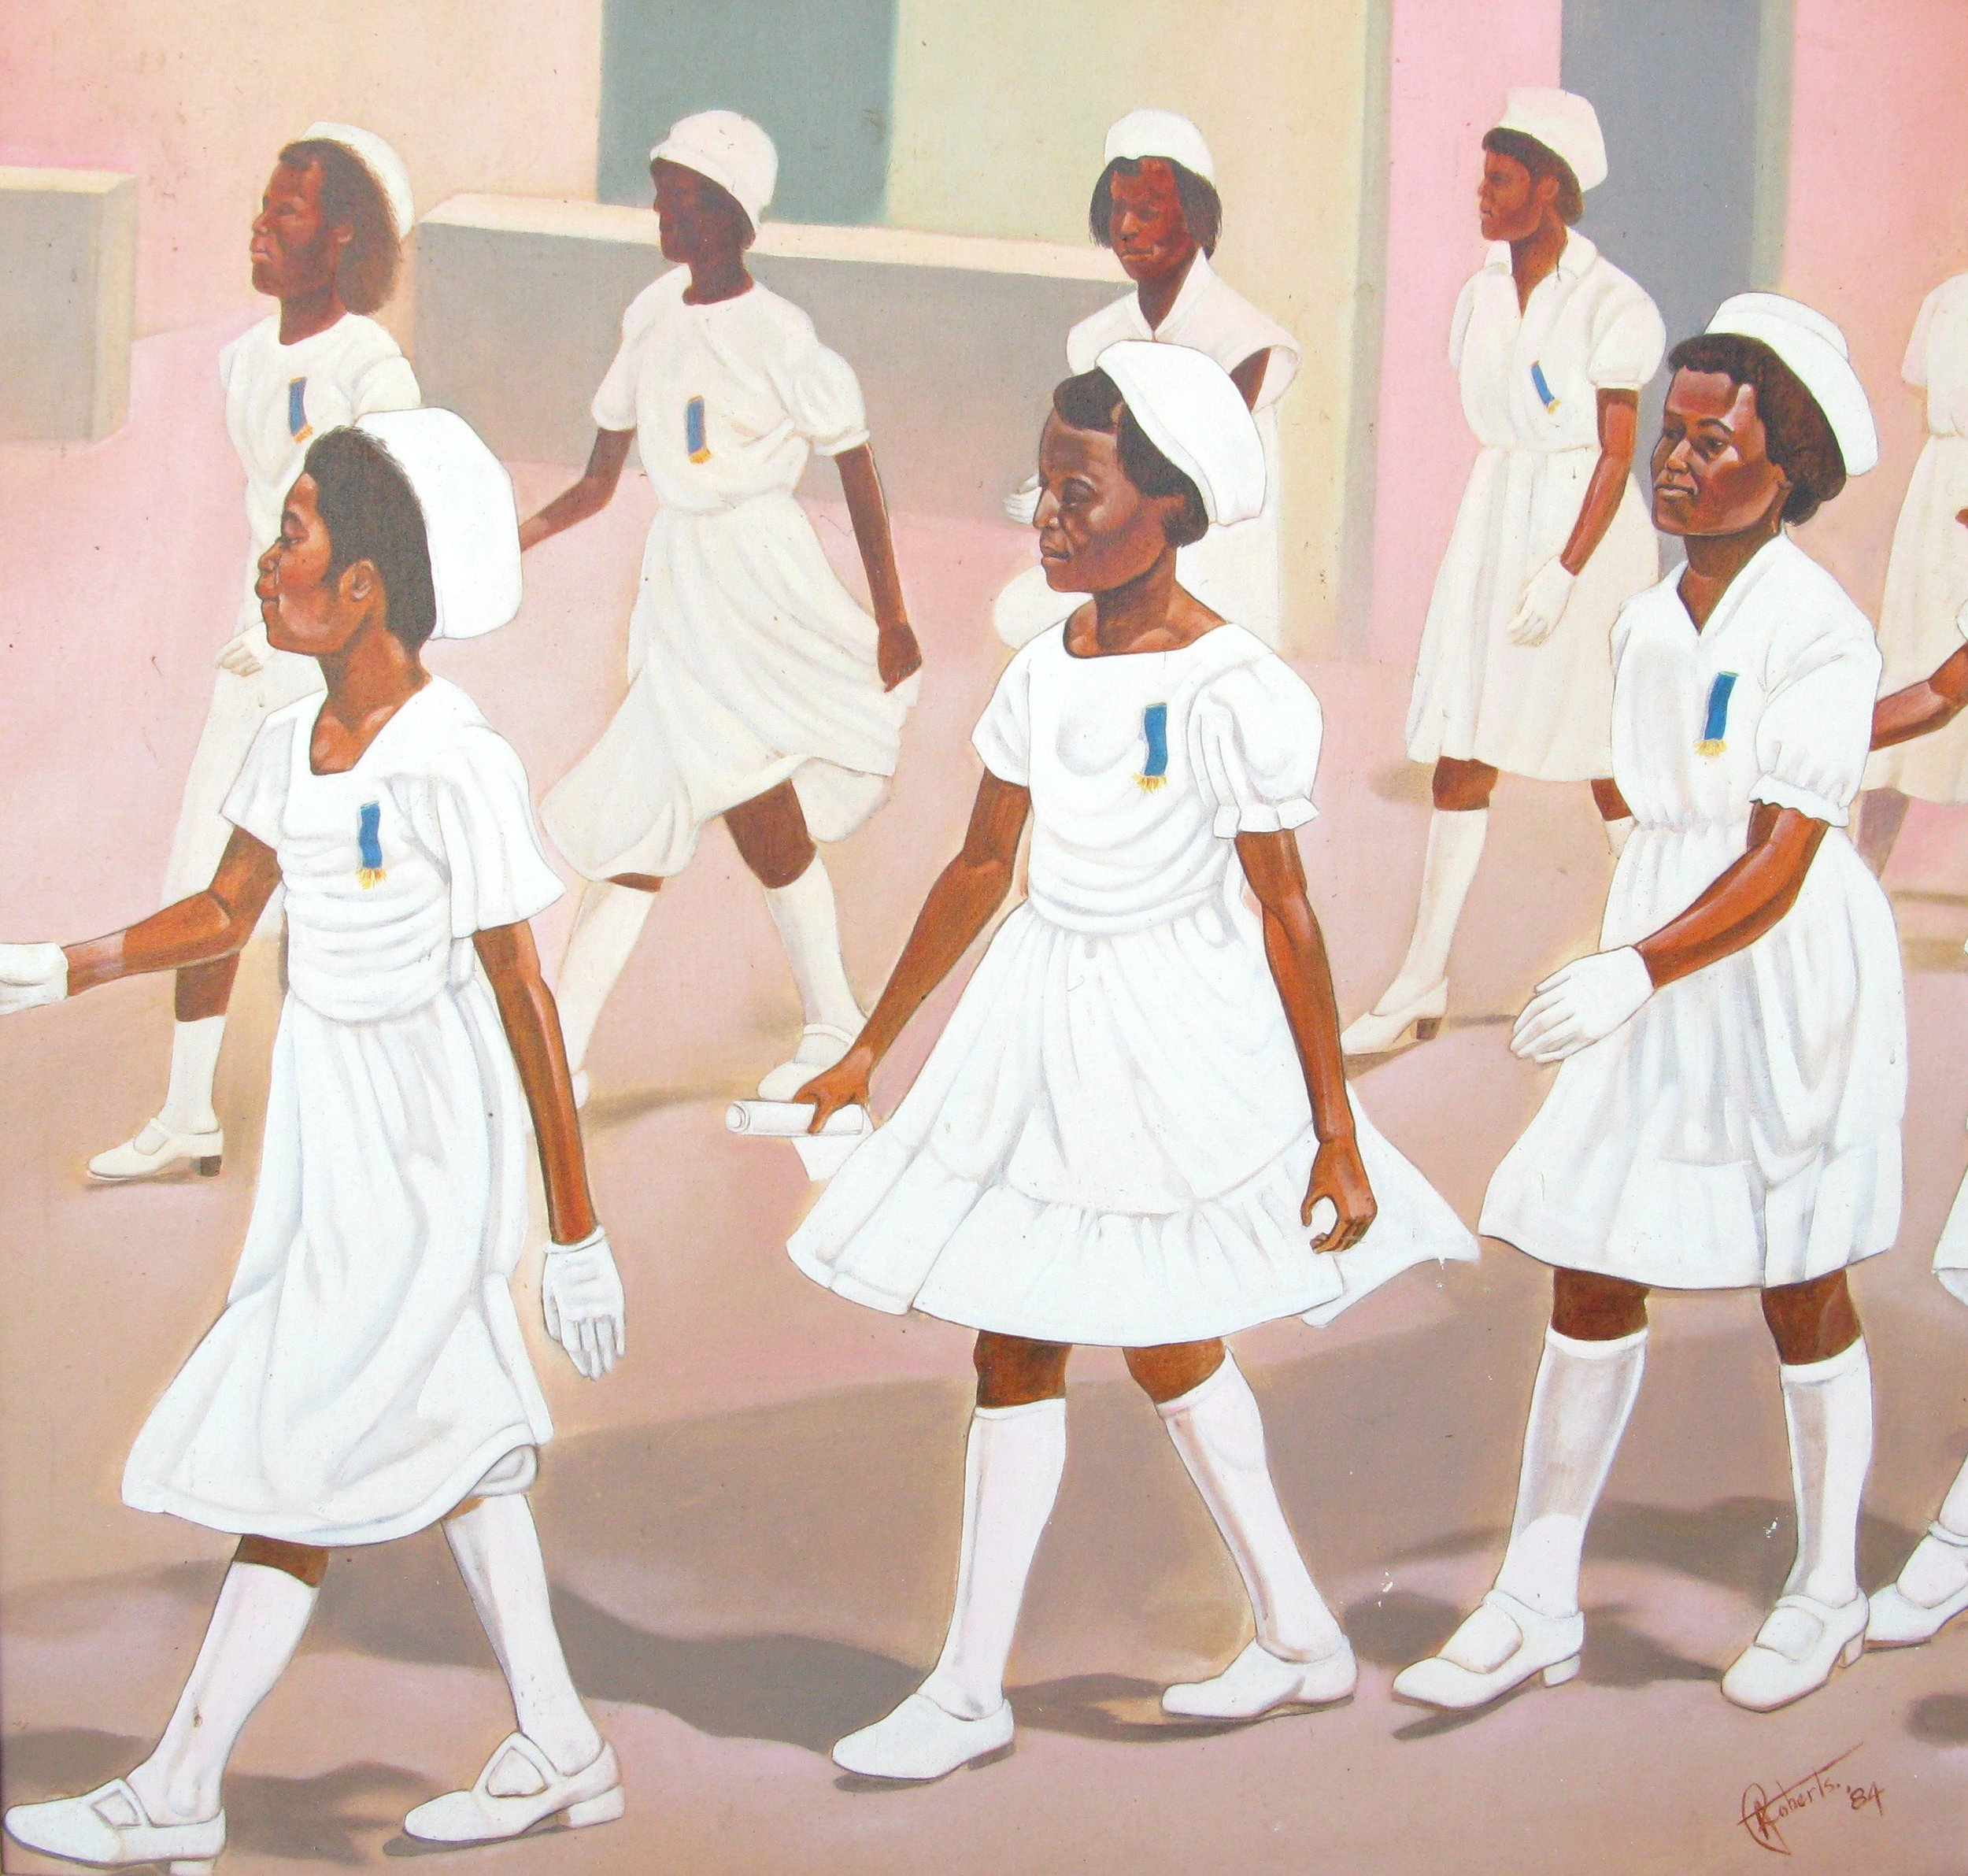 Antonius Roberts.  Procession of Females in White Uniforms,  1984, Oil on canvas, 41 x 43 in. This image is a part of the NAGB National Collection.